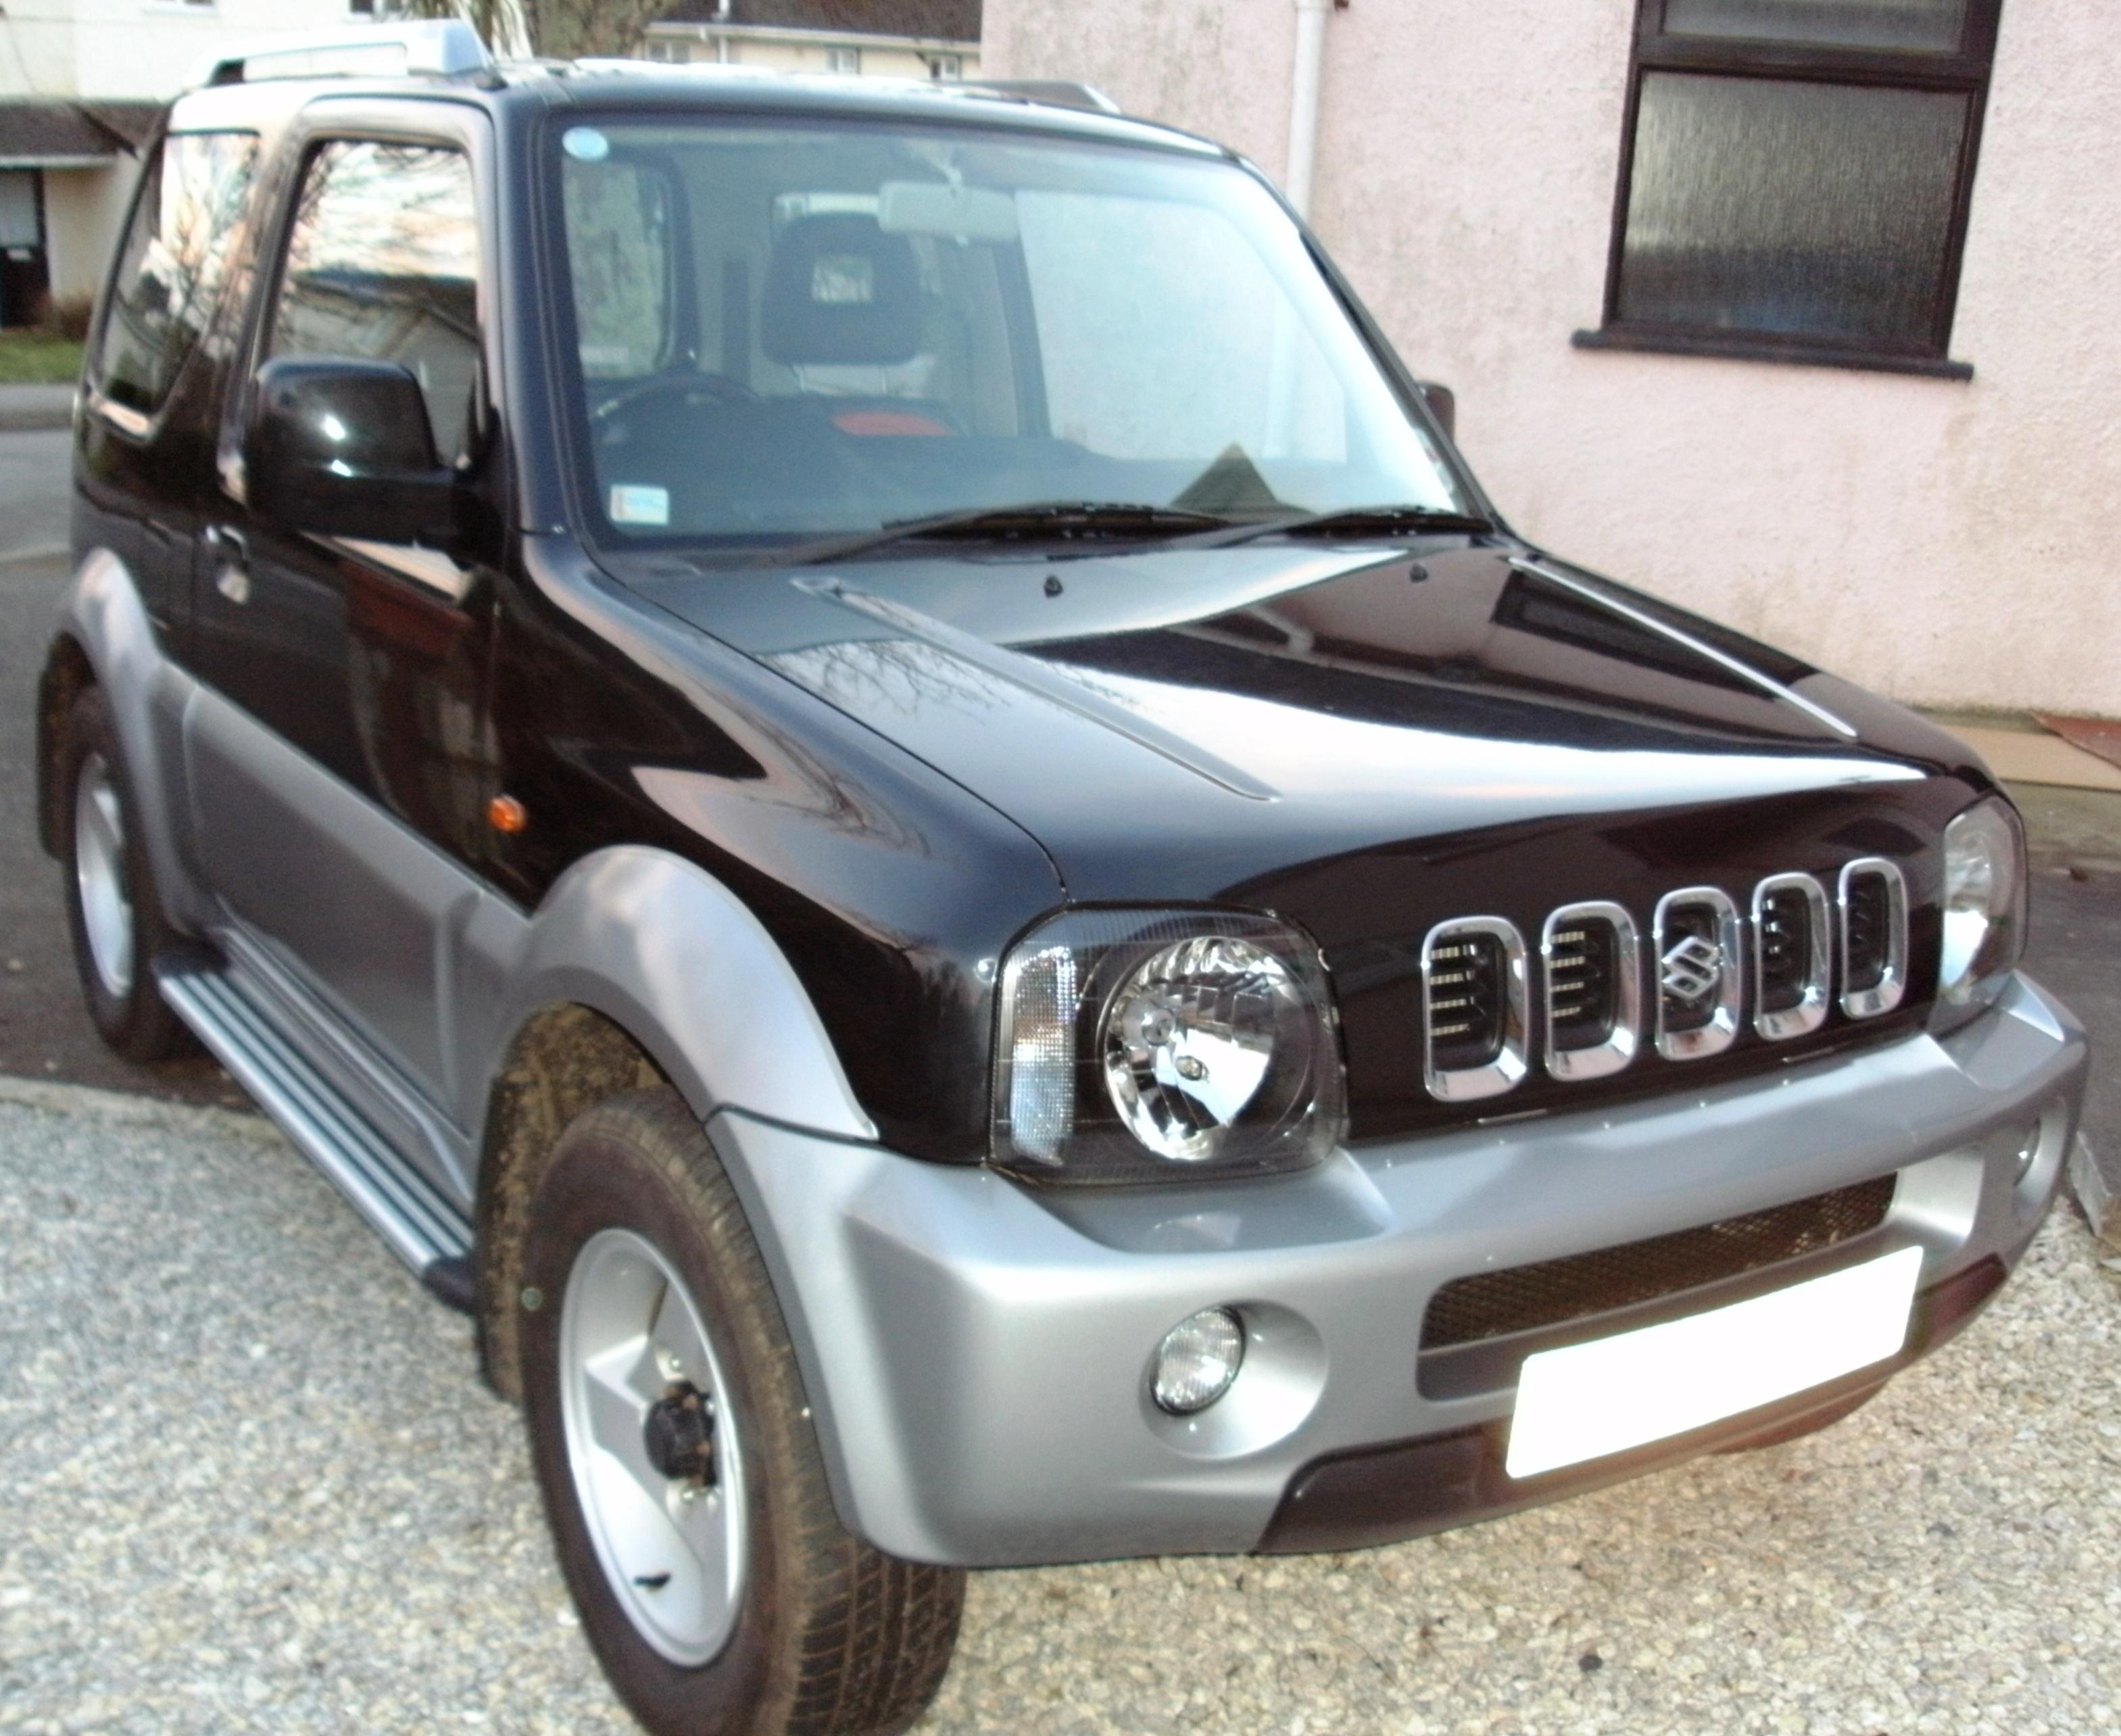 Suzuki jimny aluminium running boards side steps in silver and black part